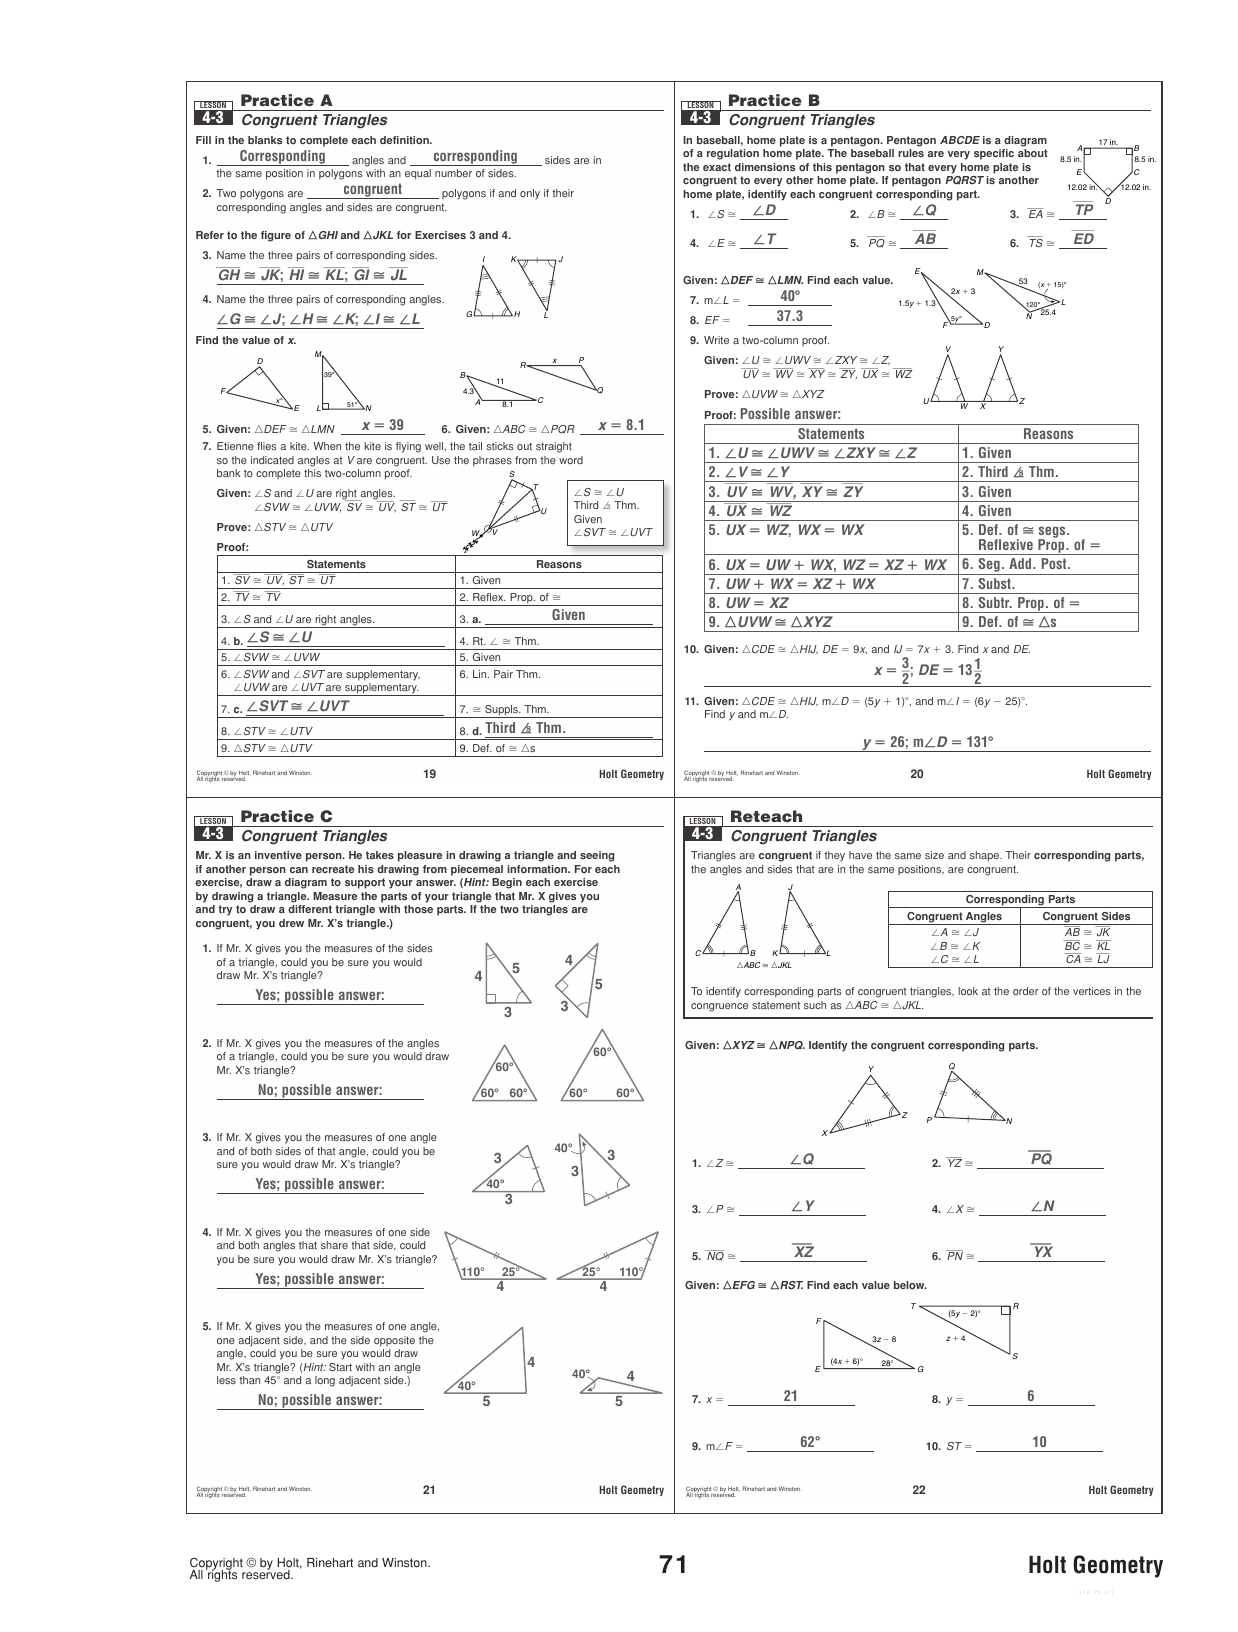 4 3 Practice Congruent Triangles Worksheet Answers